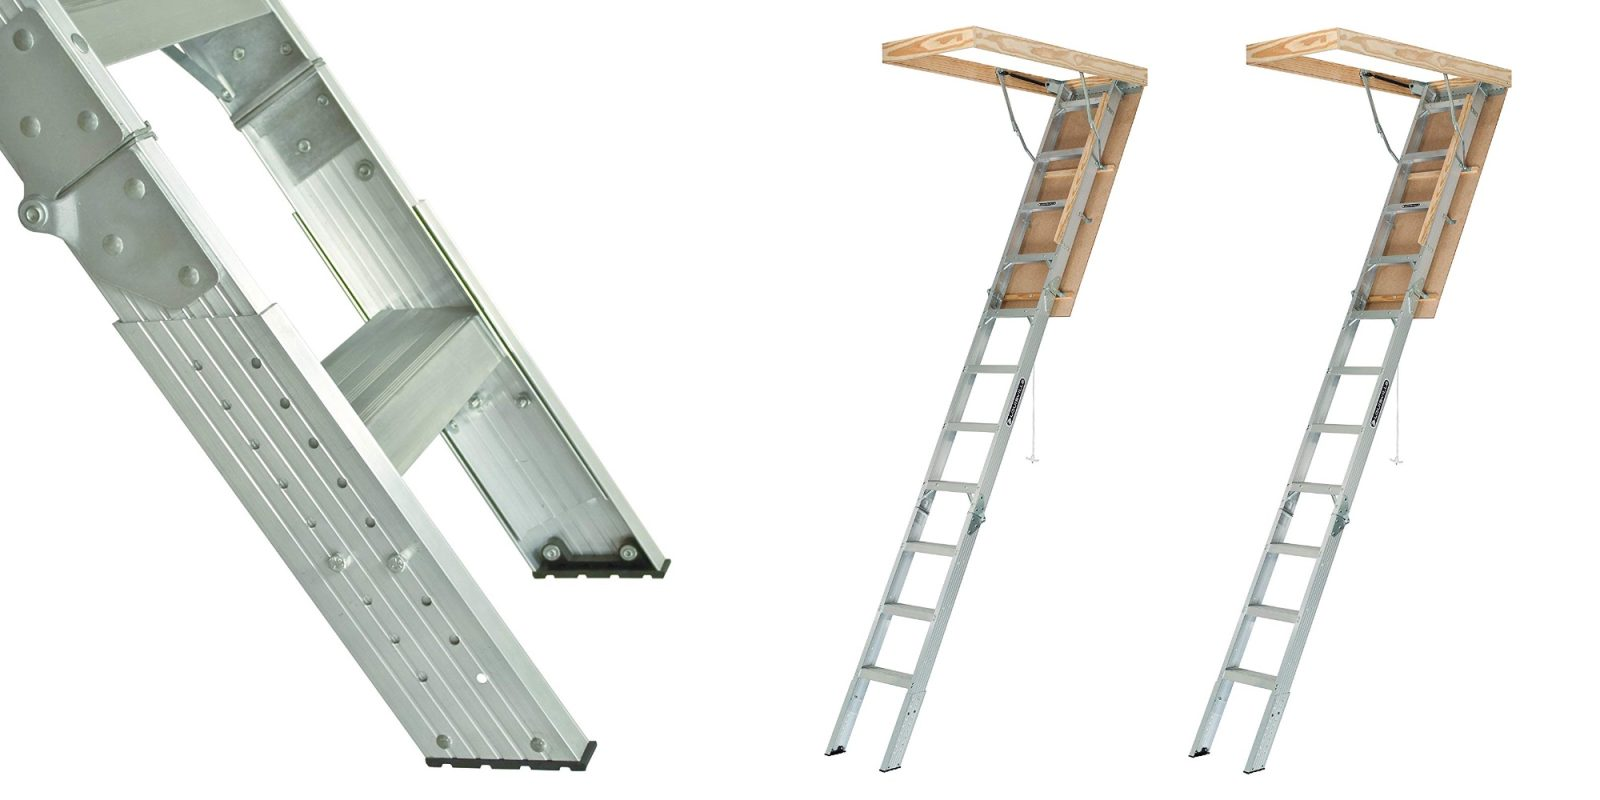 Amazon's one-day sale has Louisville ladders up to 35% off priced from $127